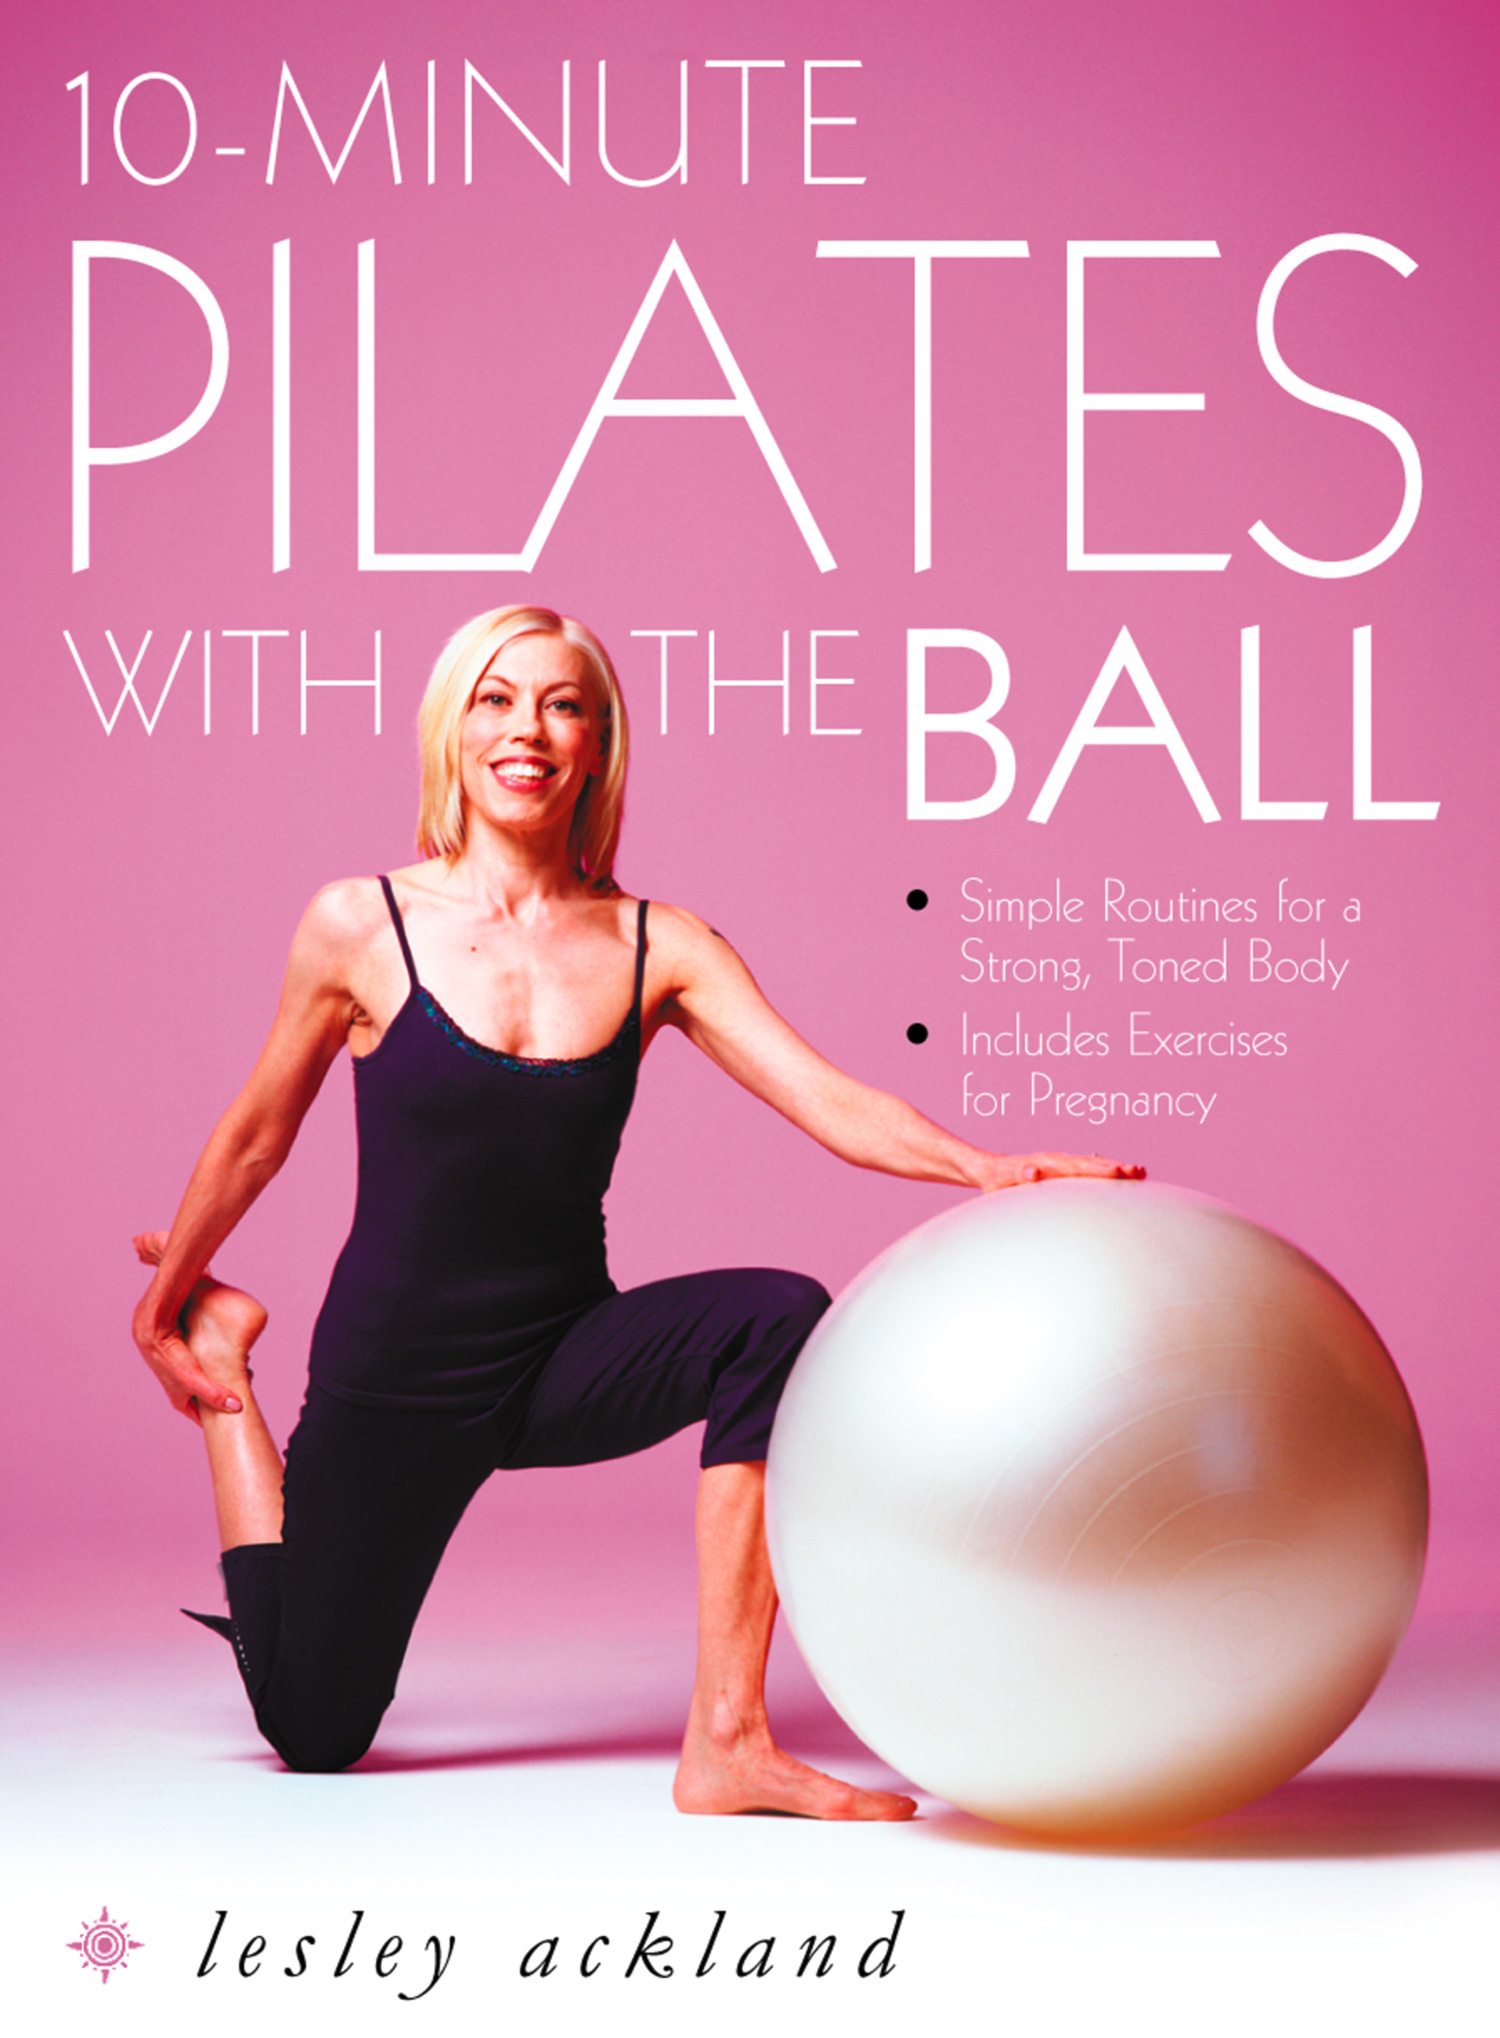 10-Minute Pilates with the Ball: Simple Routines for a Strong,  Toned Body ? includes exercises for pregnancy